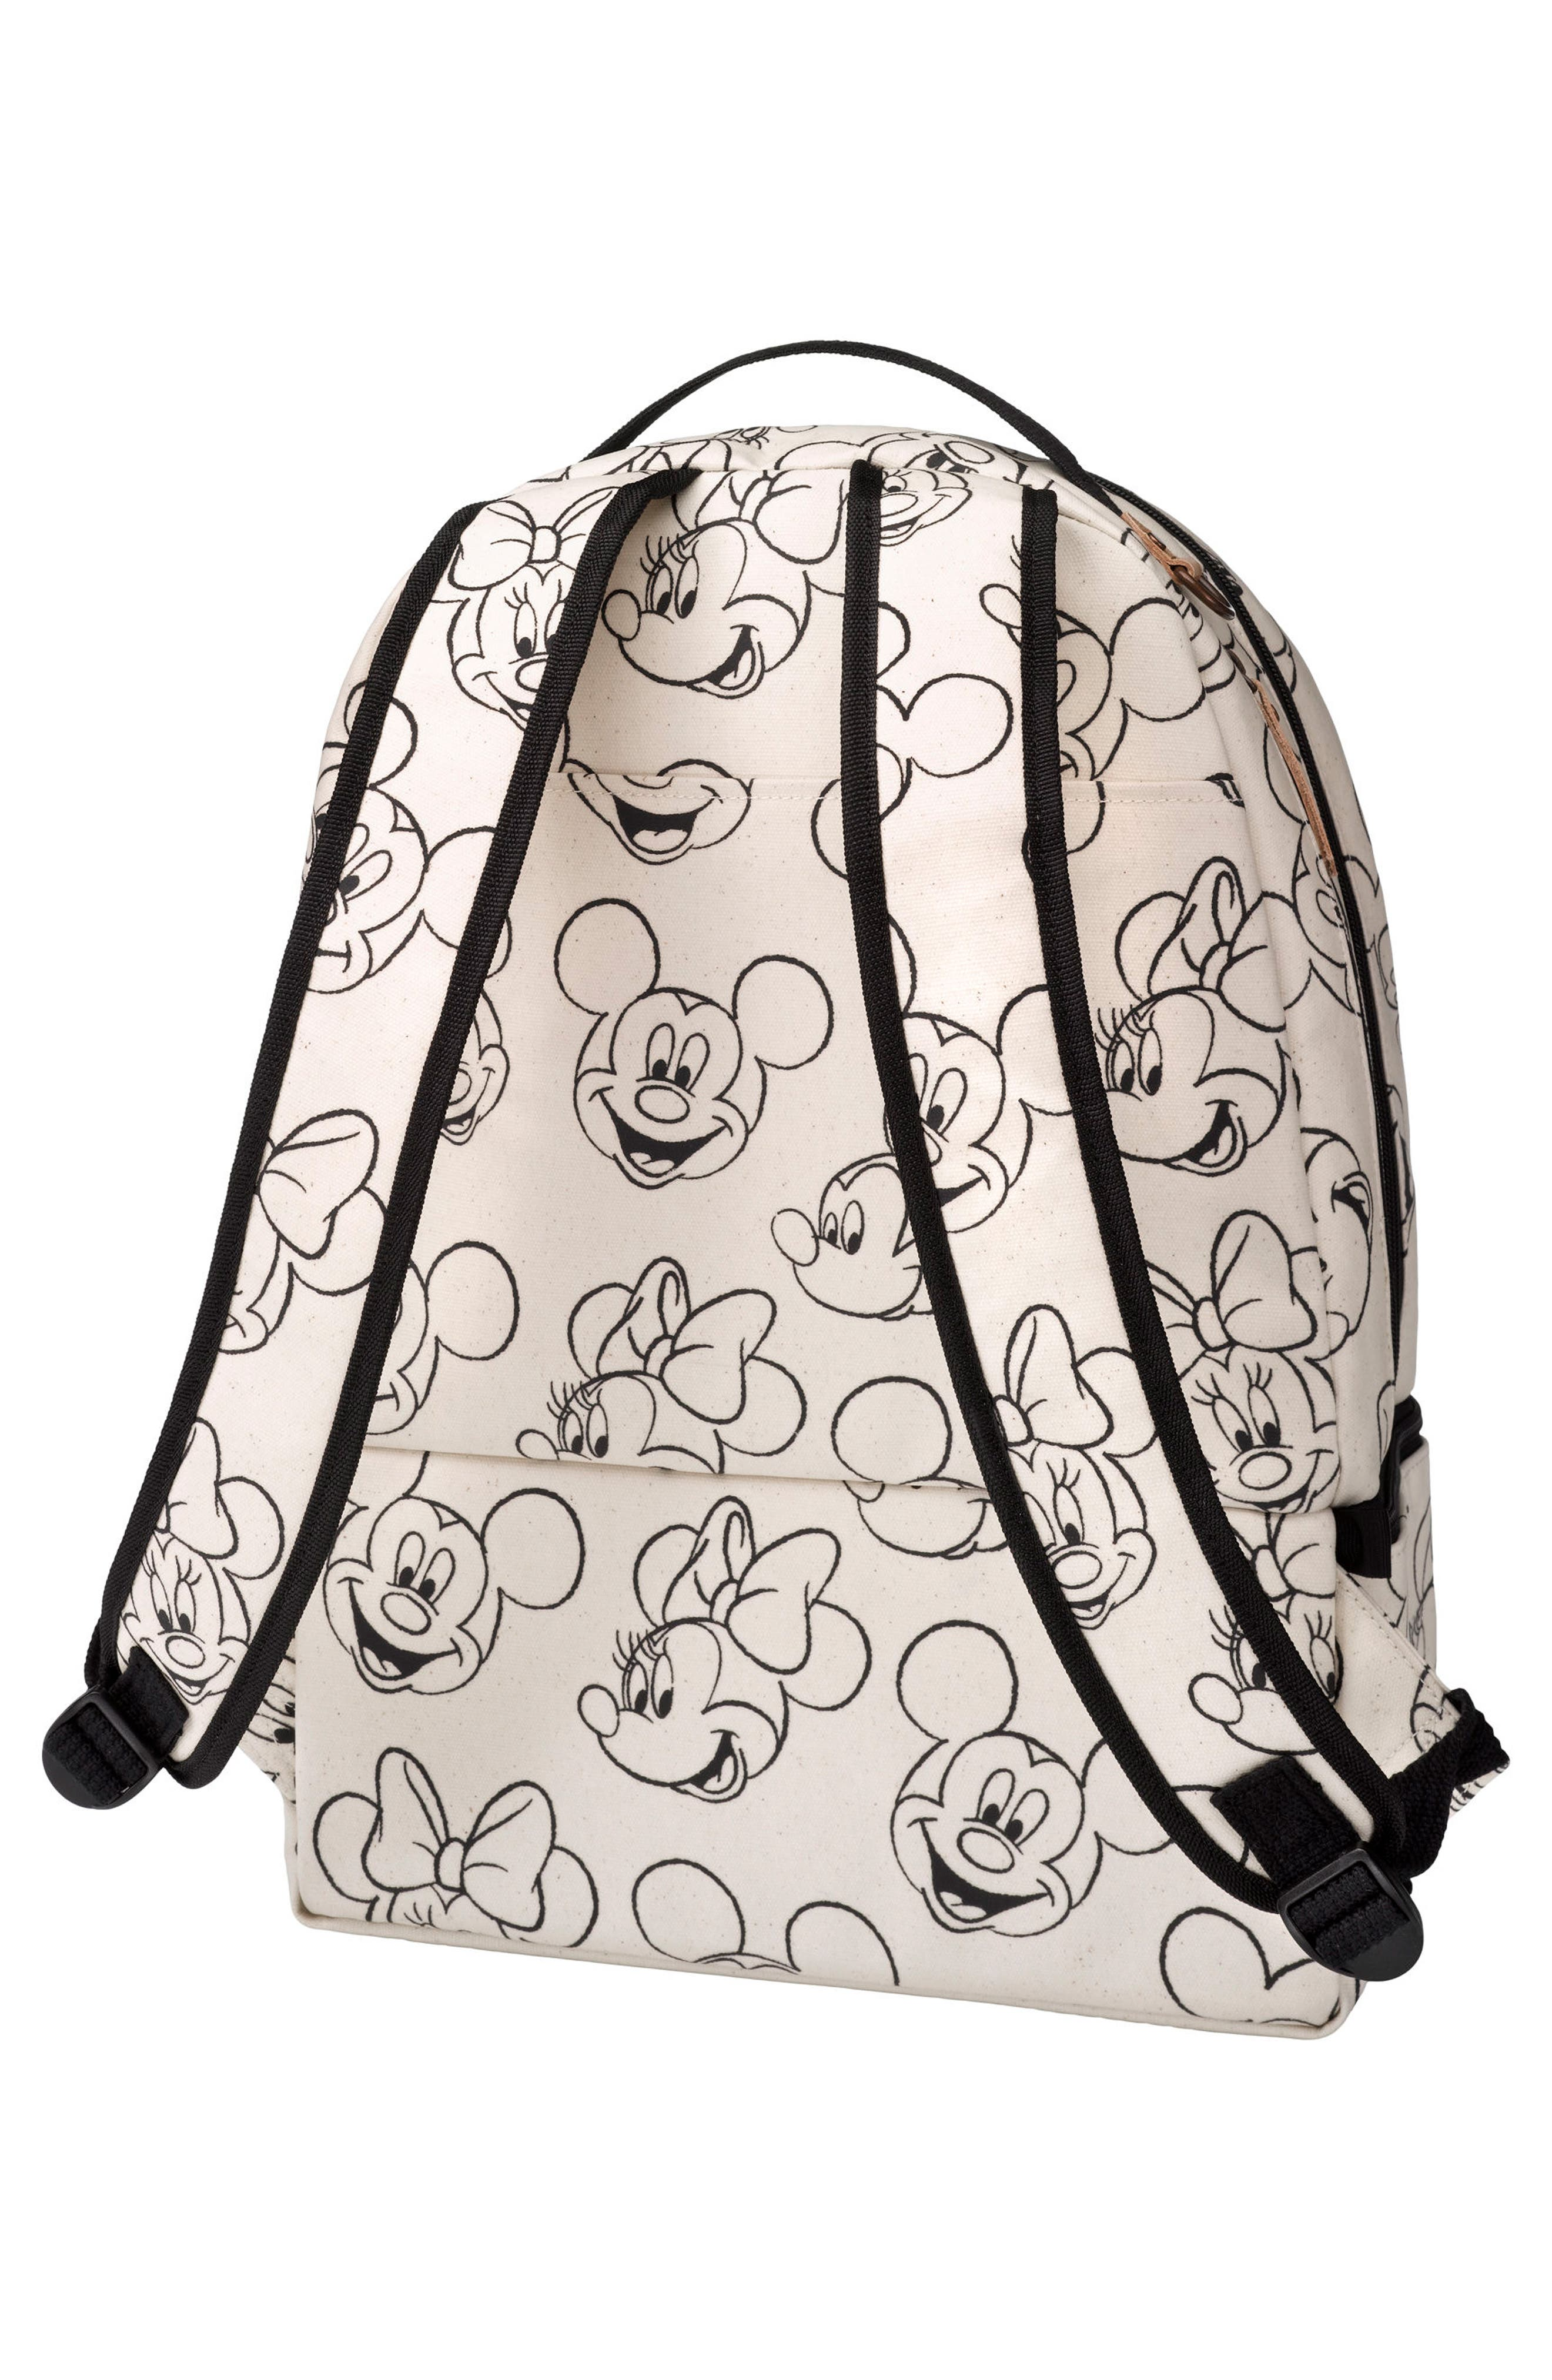 x Disney<sup>®</sup> Axis Backpack,                             Alternate thumbnail 2, color,                             SKETCHBOOK MICKEY AND MINNIE